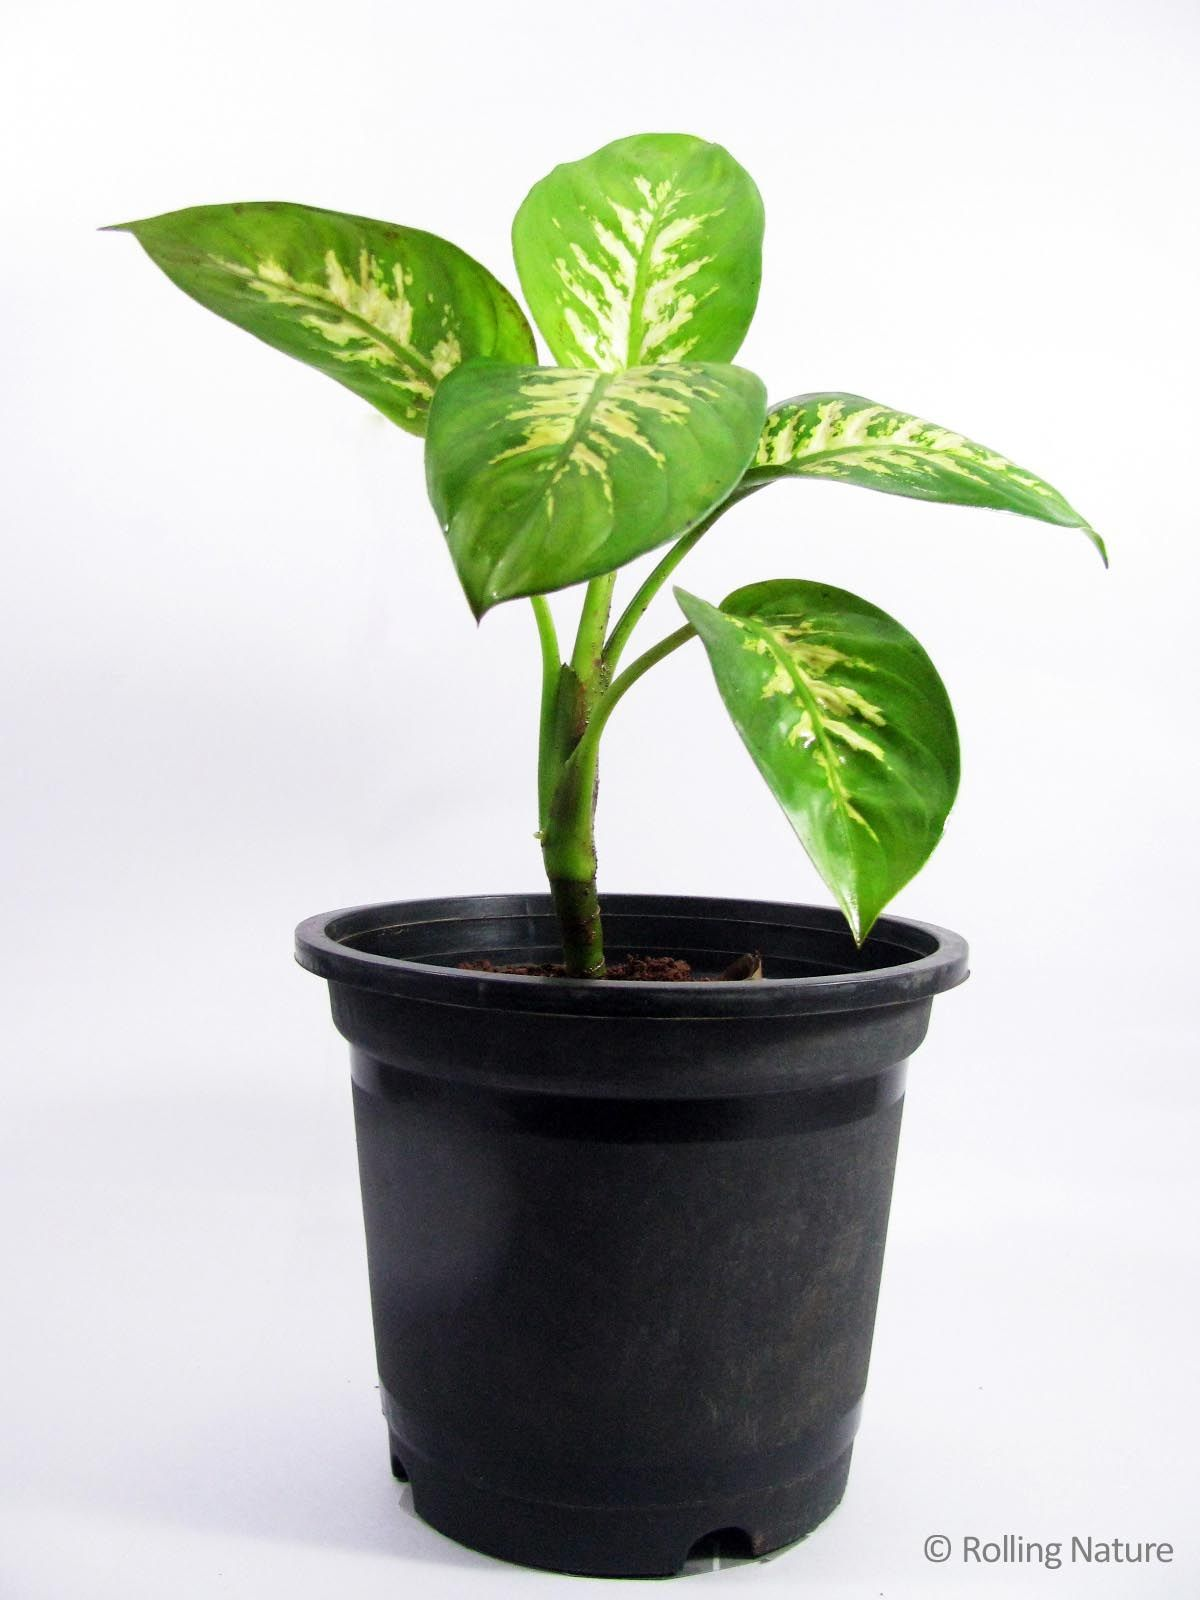 Ffenbachia A Broad Leaved Foliage Plant With Thick